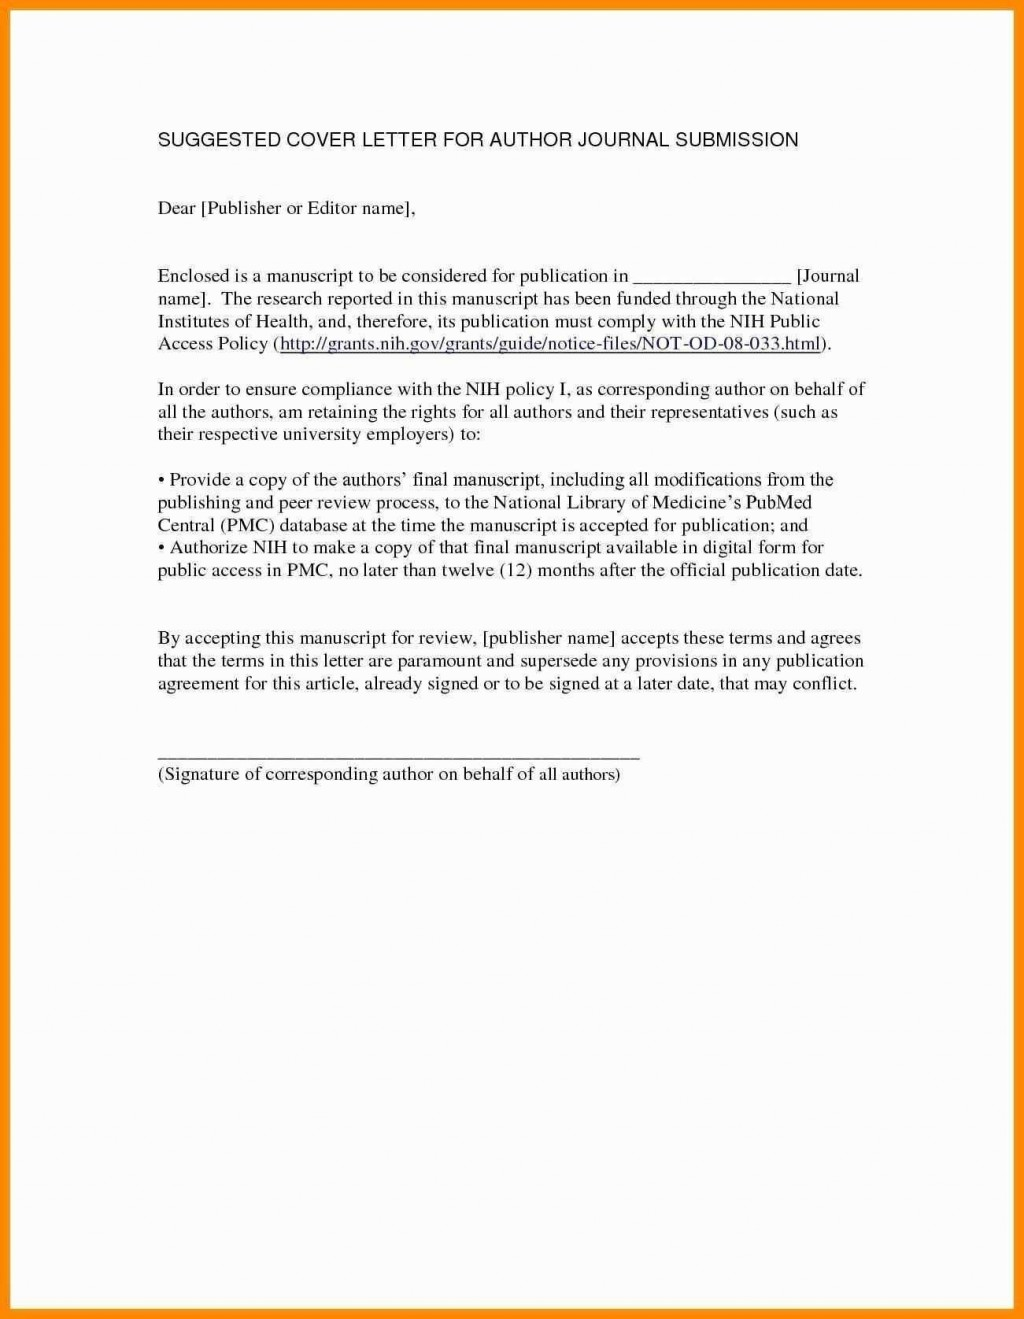 018 Research Paper Cover Letter Example Article Submission Valid For Journal Manuscript Of Singular Publication Model Large